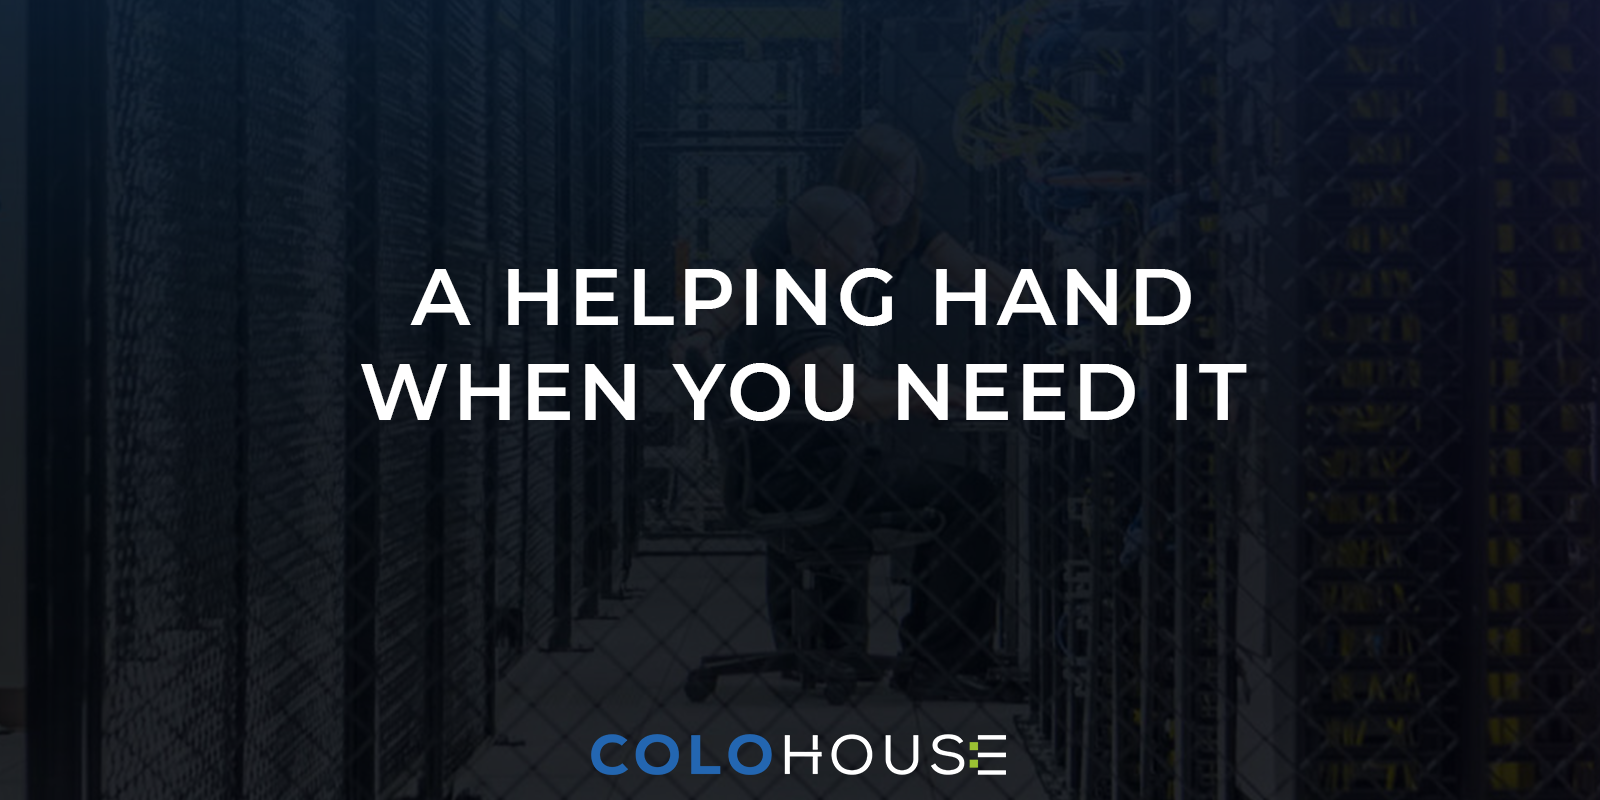 blog title: a helping hand when you need it